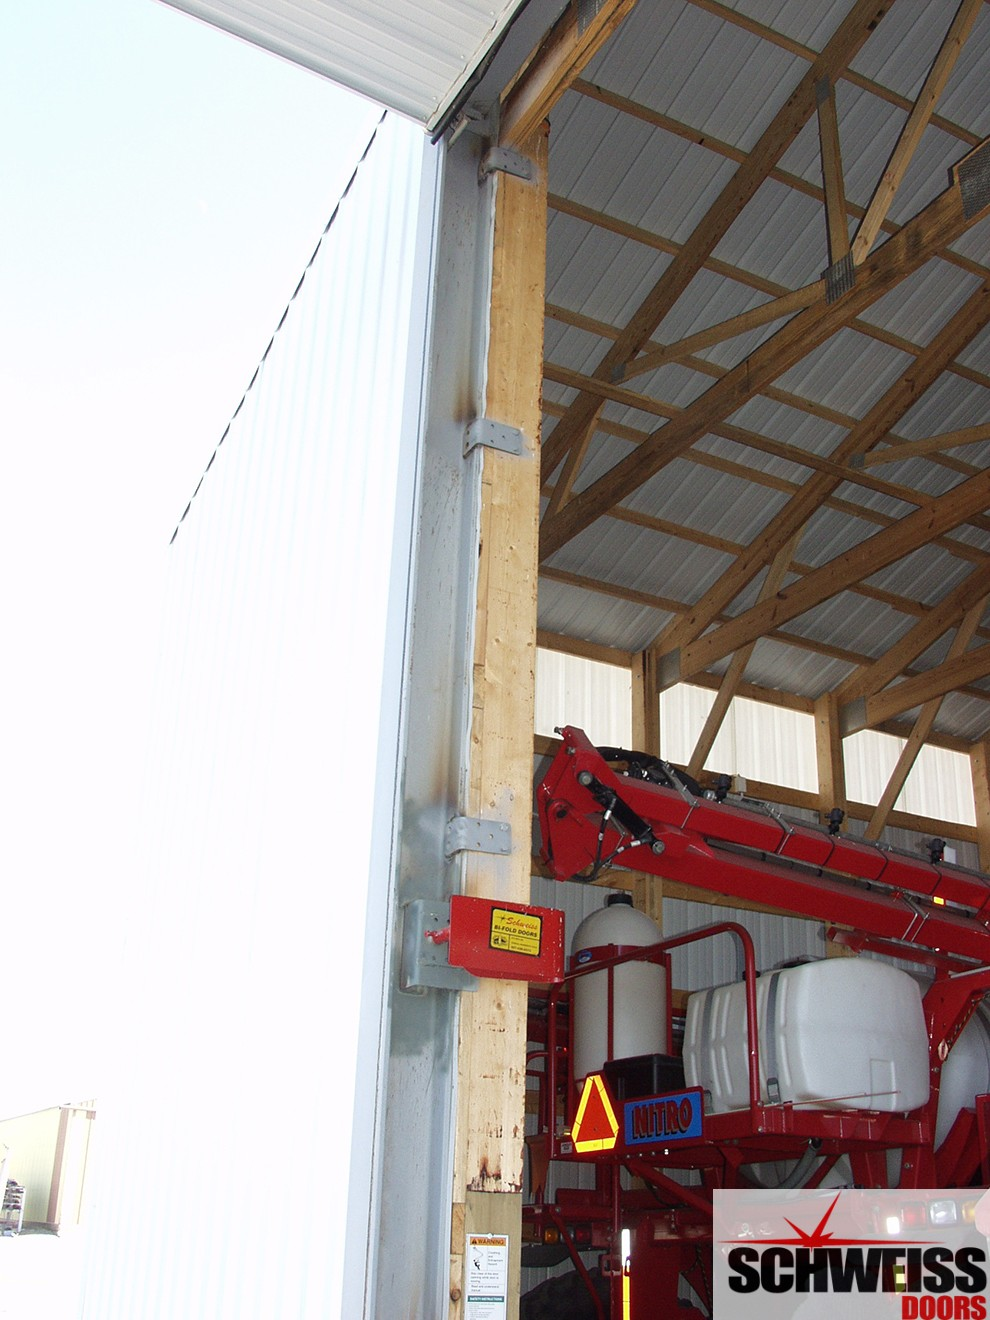 Hydraulic door sub-frame attaches to vertical jambs